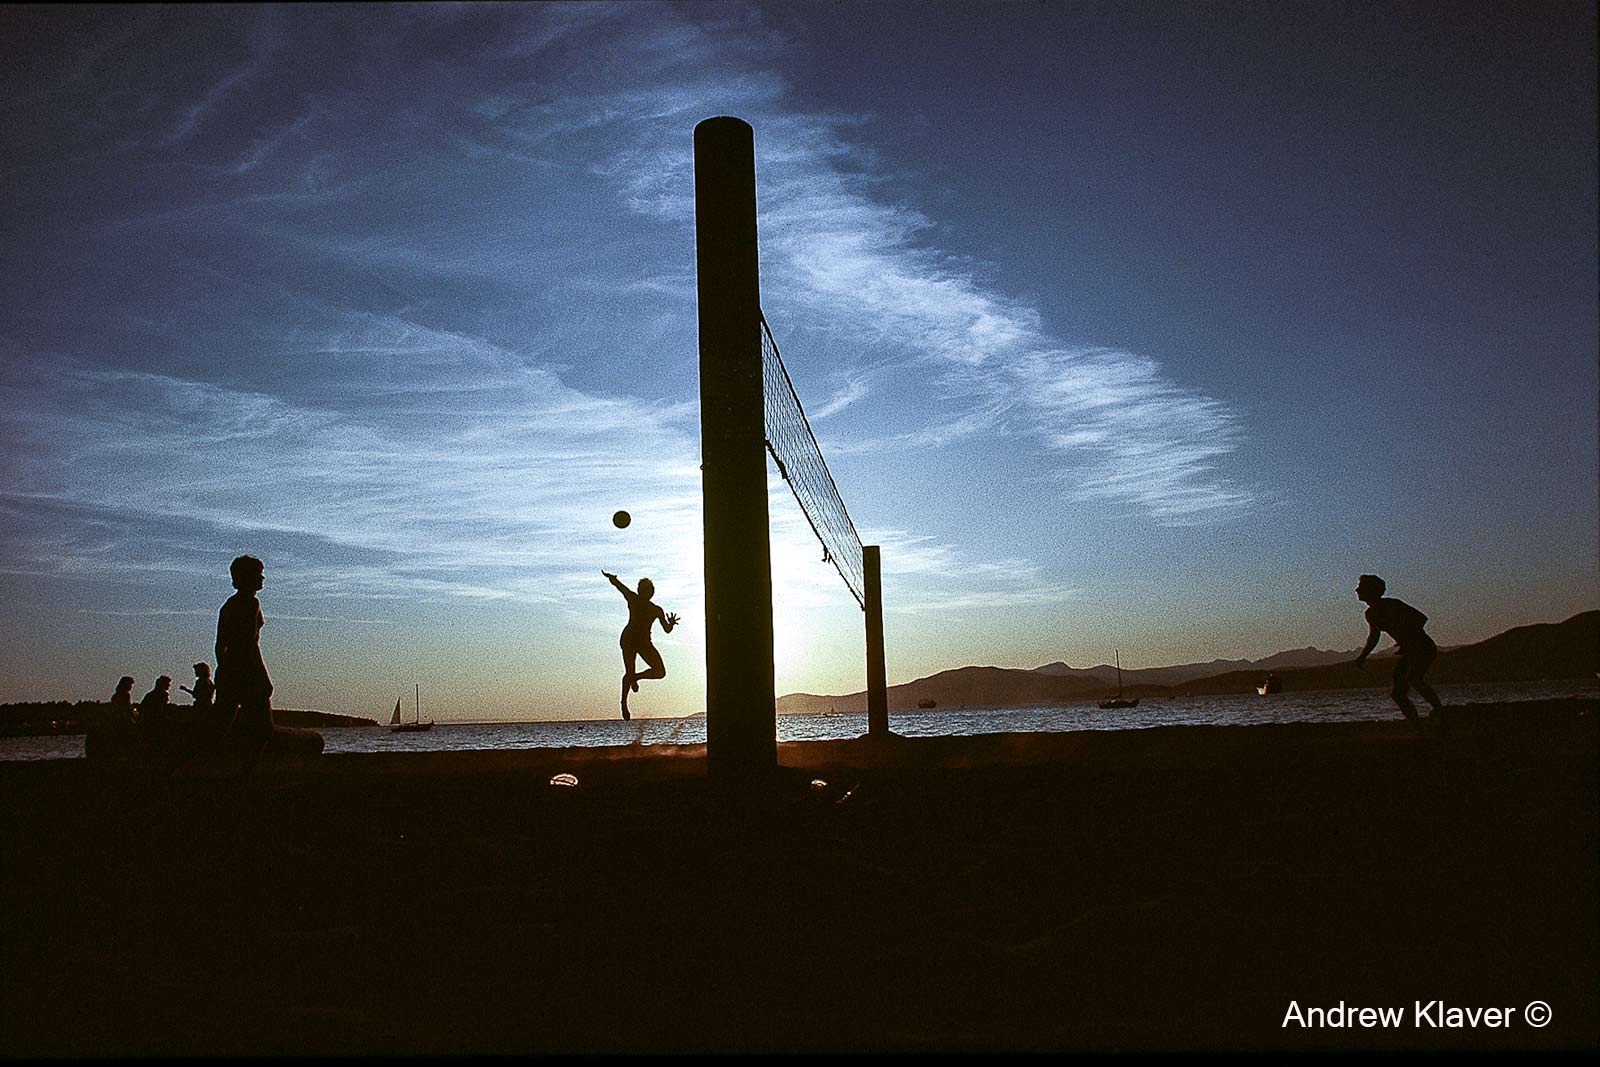 Volleyball English bay style, 1993